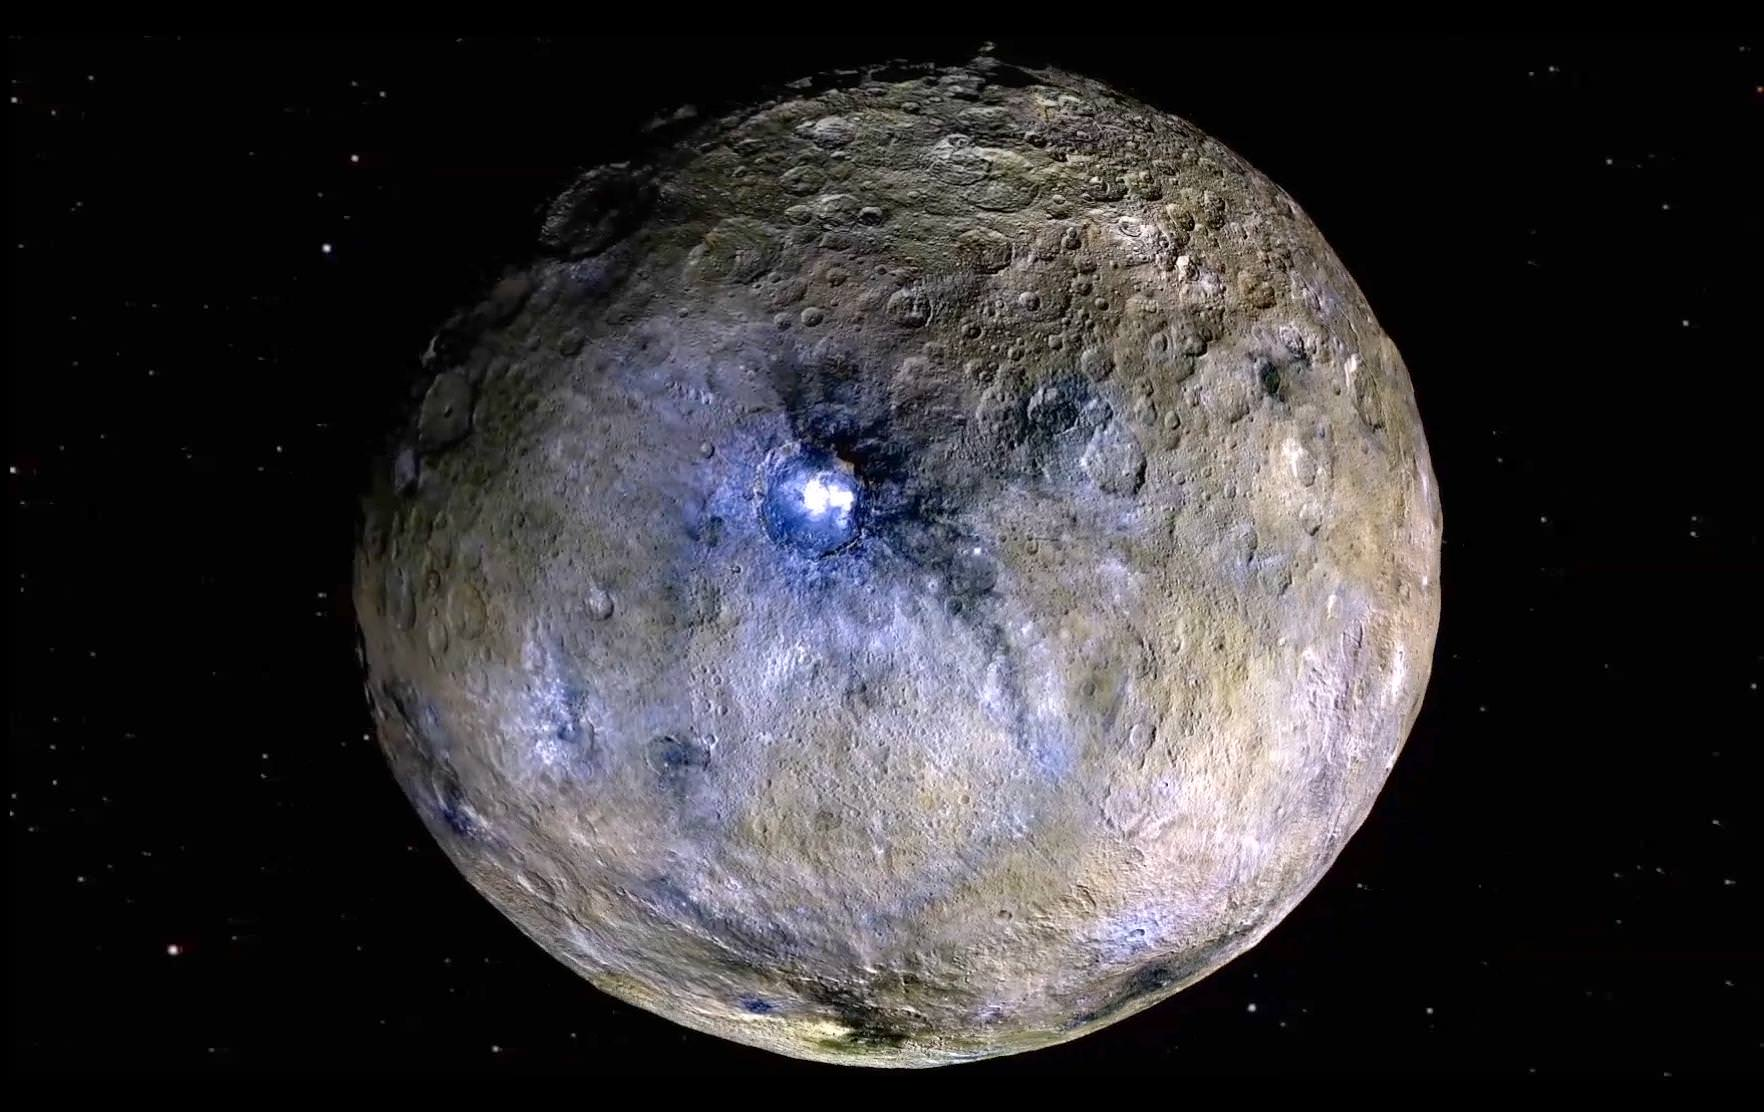 Dwarf planet Ceres is shown in this false-color renderings, which highlight differences in surface materials.  The image is centered on Ceres brightest spots at Occator crater. Image credit: NASA/JPL-Caltech/UCLA/MPS/DLR/IDA